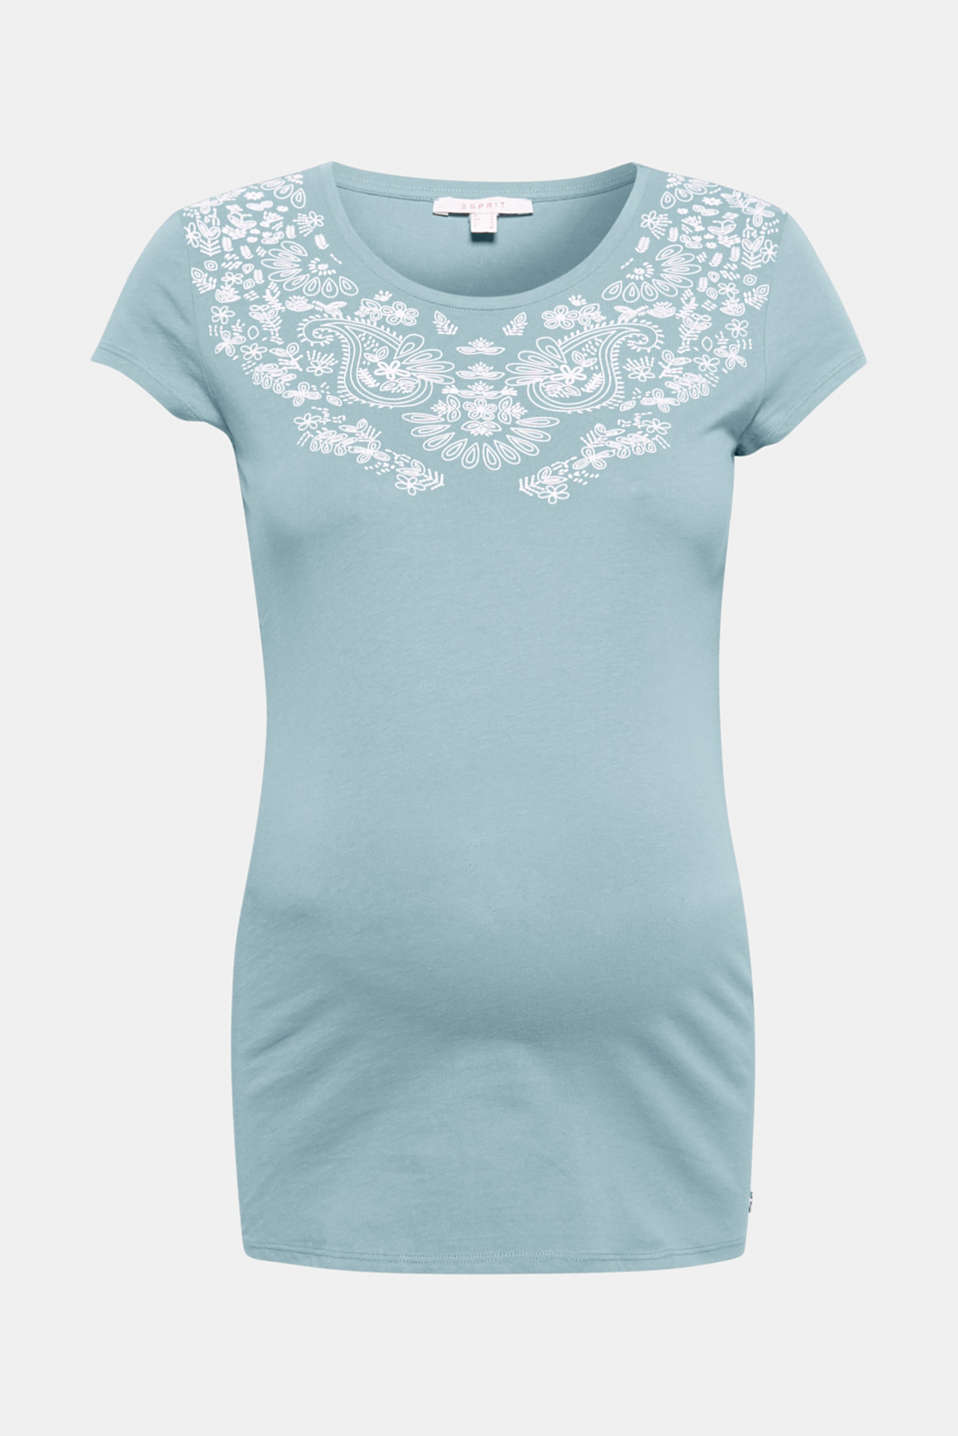 The slightly rubberised paisley print gives this lightweight cotton top its fashionable, playful note!